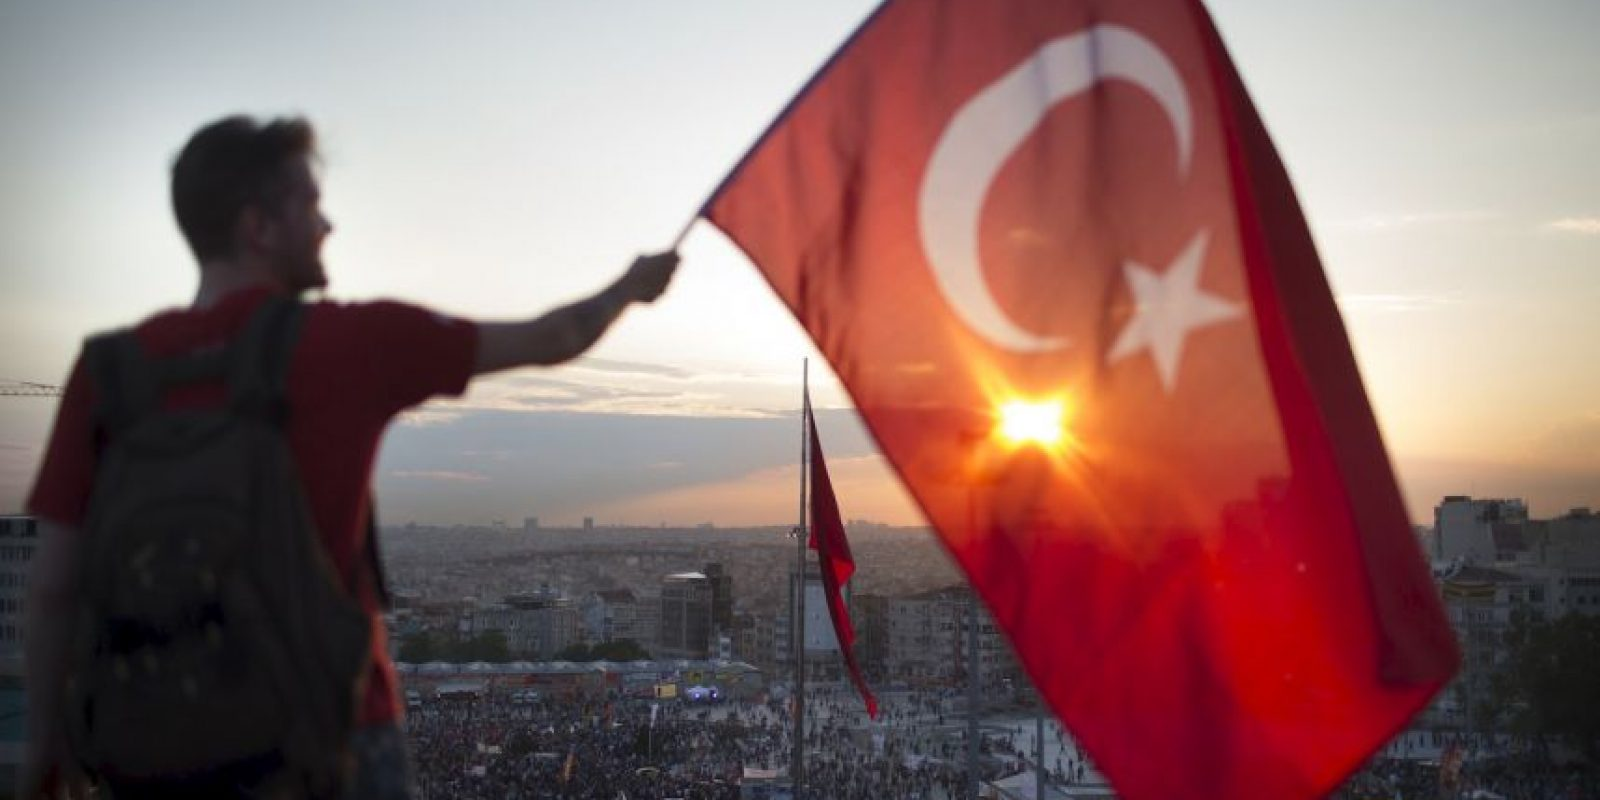 3. Turquía Foto: Getty Images